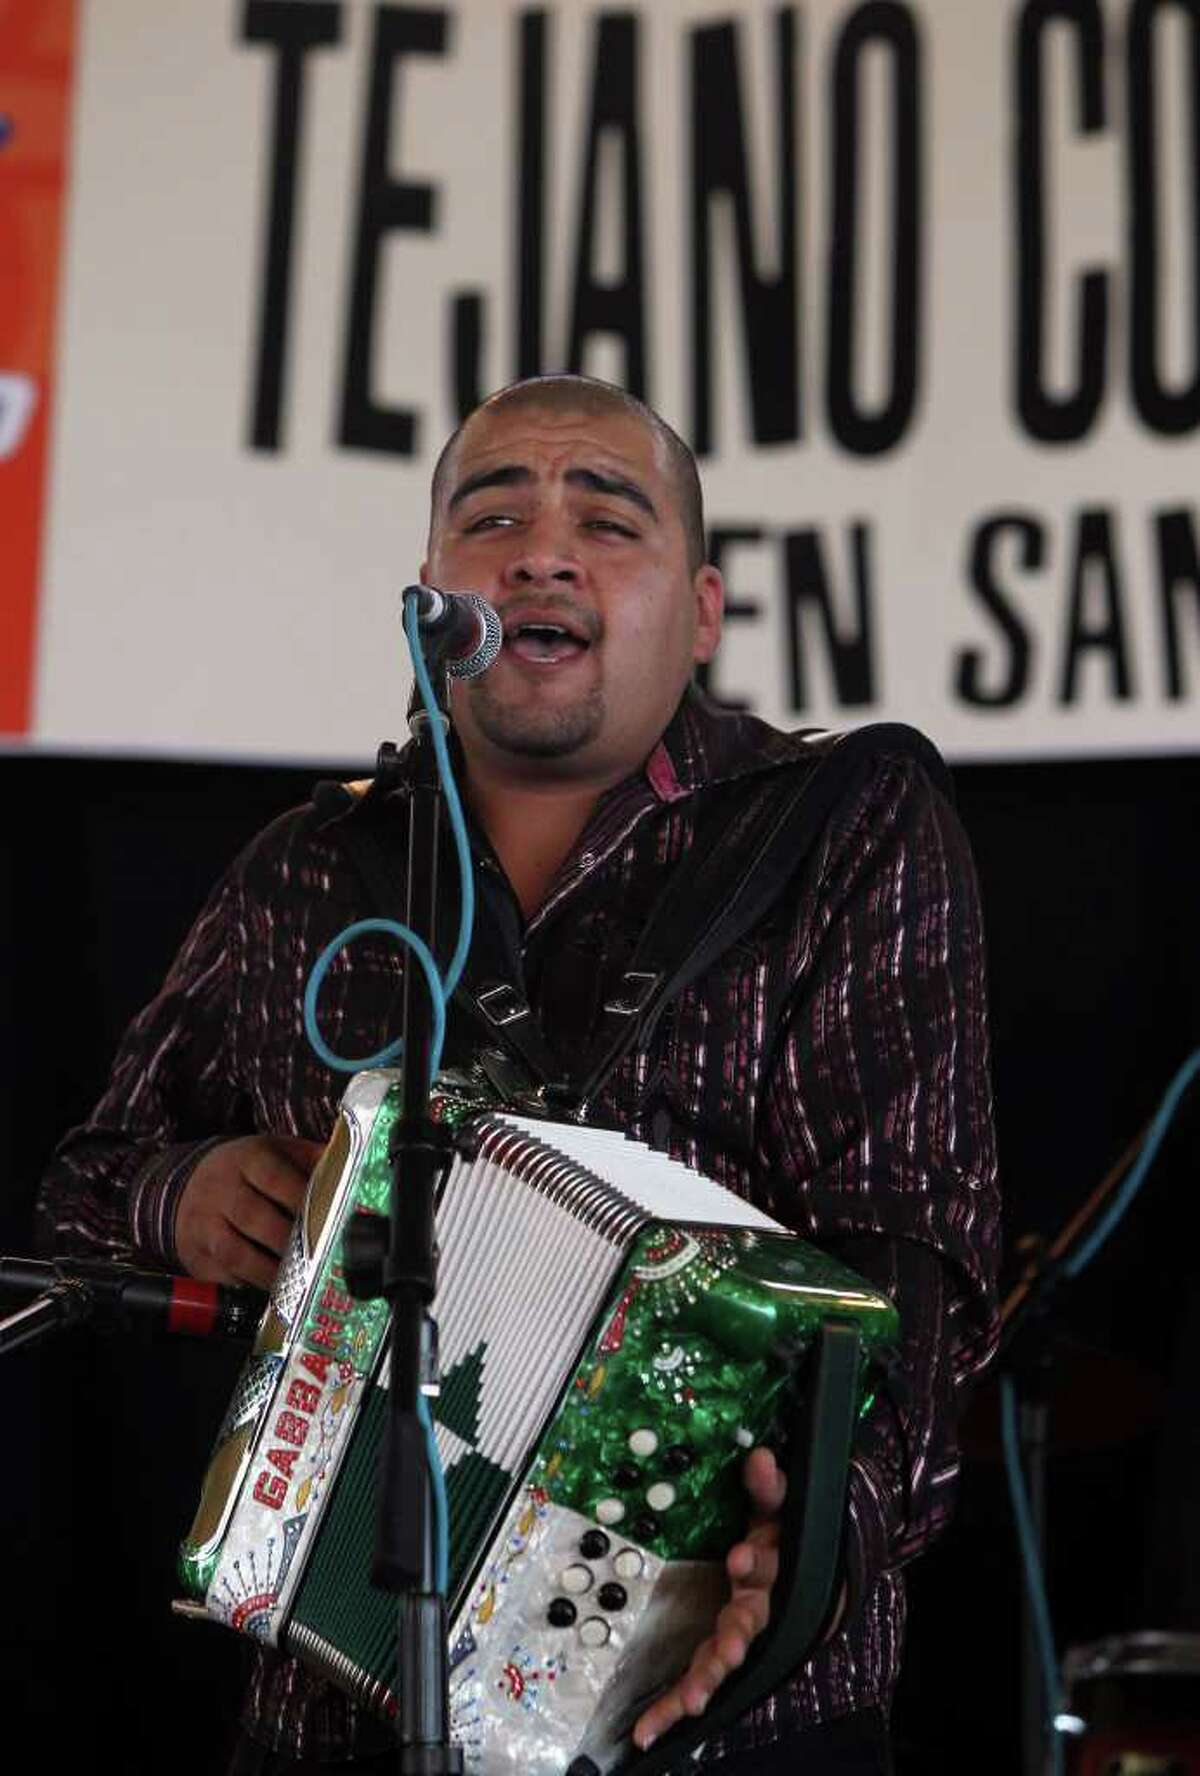 Salomon (cq) Ramos plays the accordion leading Grupo Retono Sunday May 15, 2011 at Rosedale Park during the last day of the Tejano Conjunto Festival. The festival started last Thursday. JOHN DAVENPORT/jdavenport@express-news.net